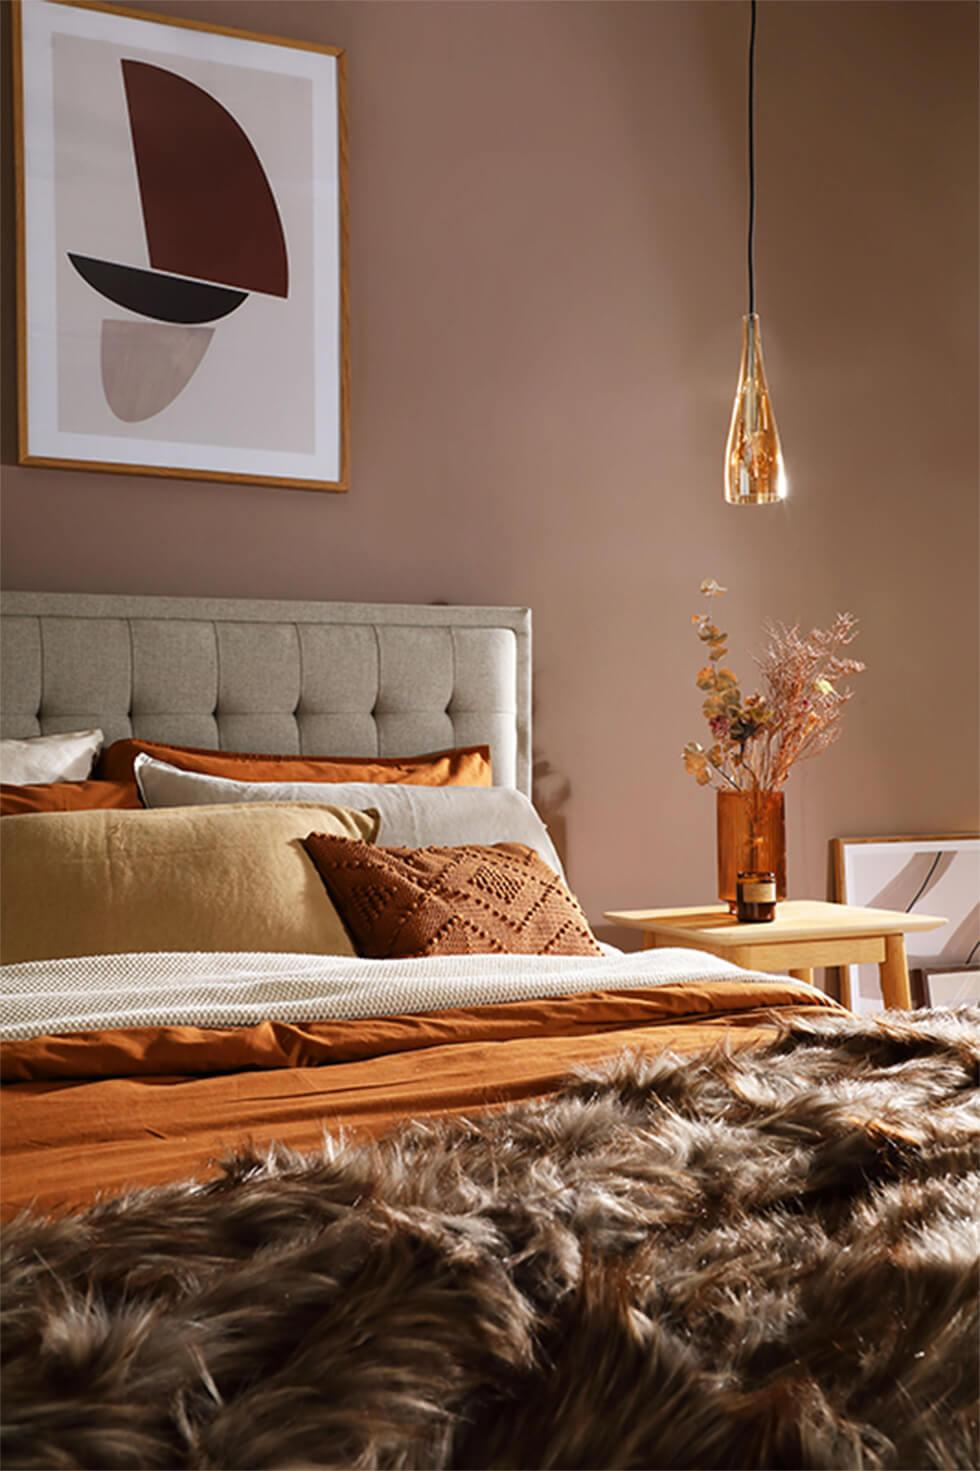 Neutral bedroom with fabric bed, fur throw and bronze pendant lamp